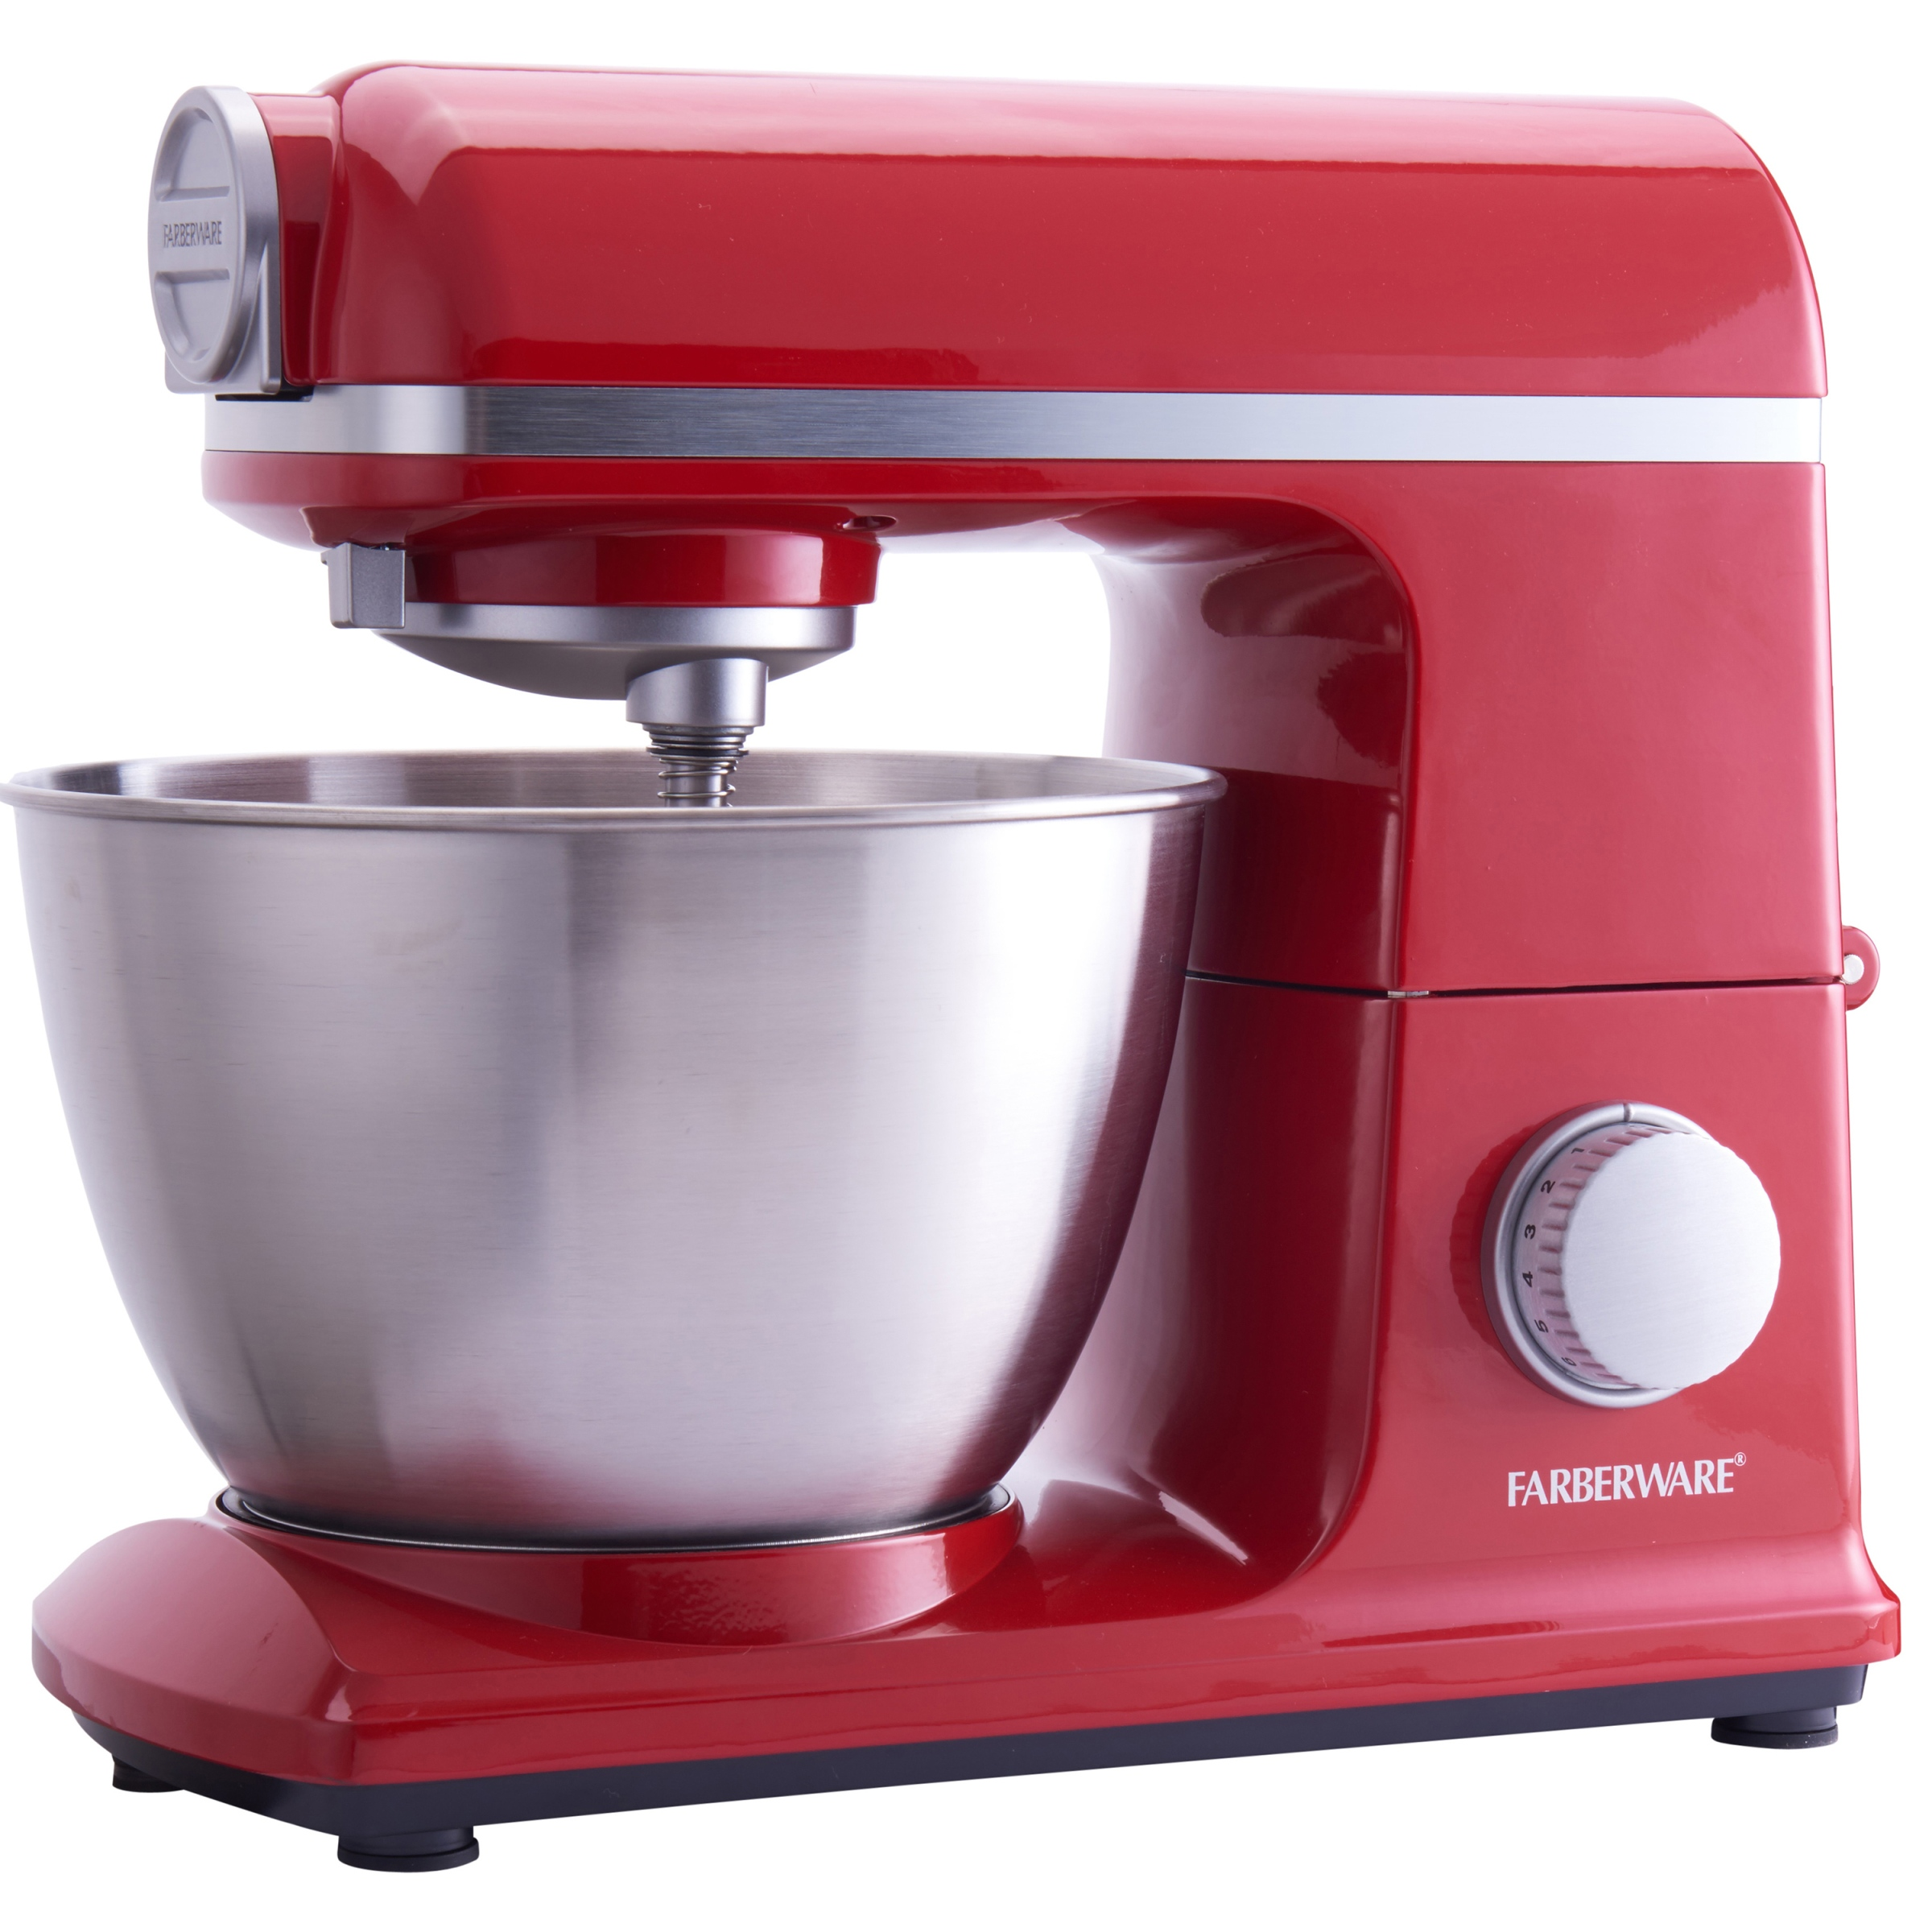 Farberware 6 Speed 4.7-Quart Professional Stand Mixer, Red